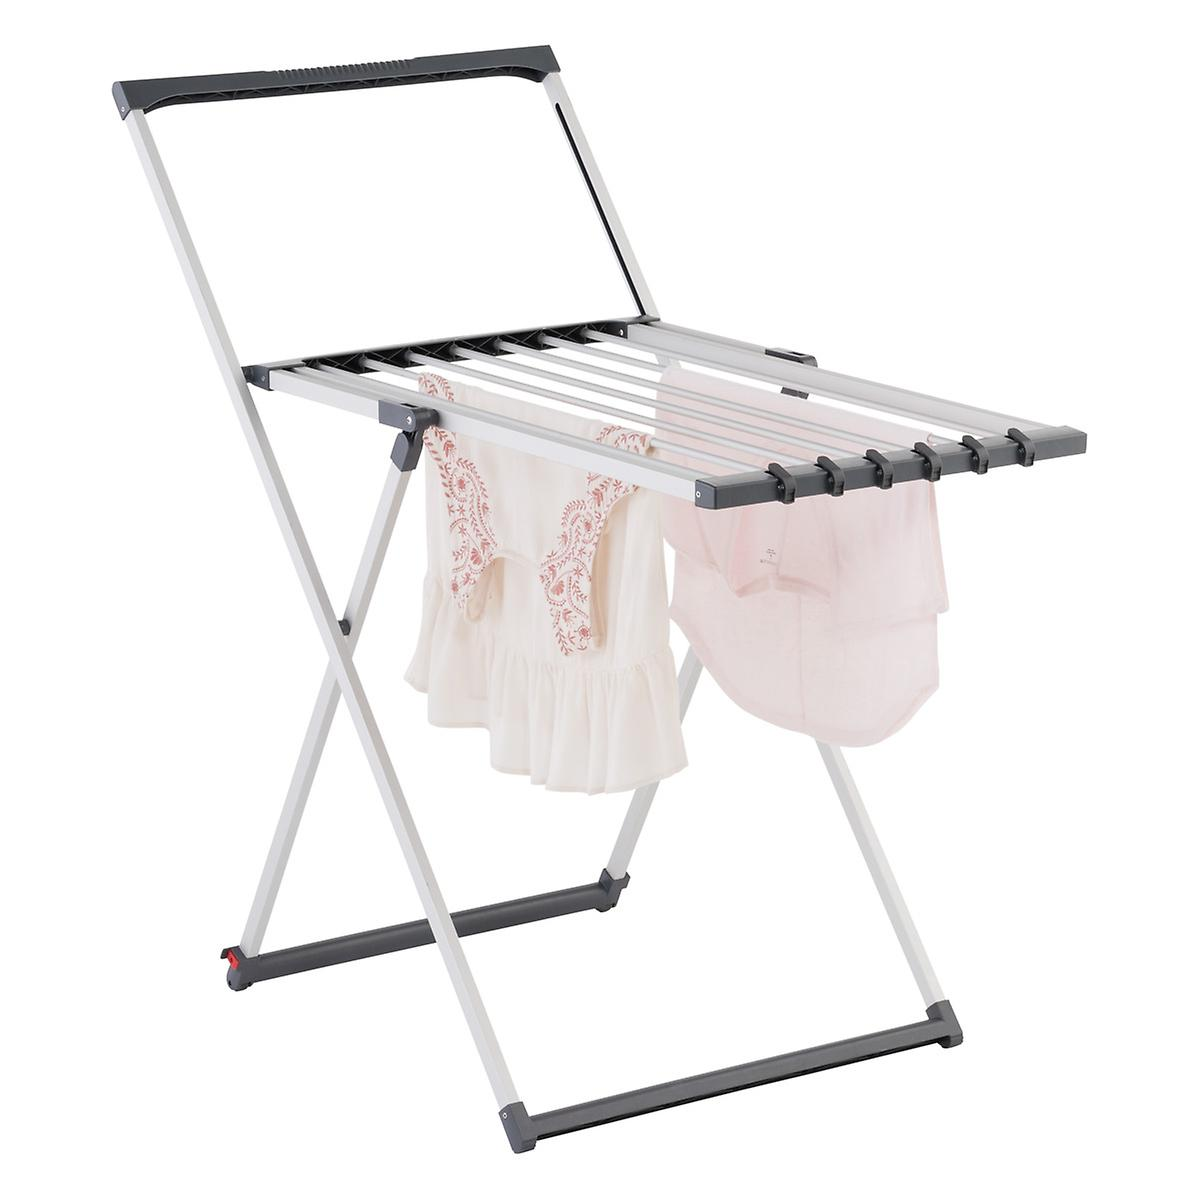 Polder Aluminum Clothes Drying Rack